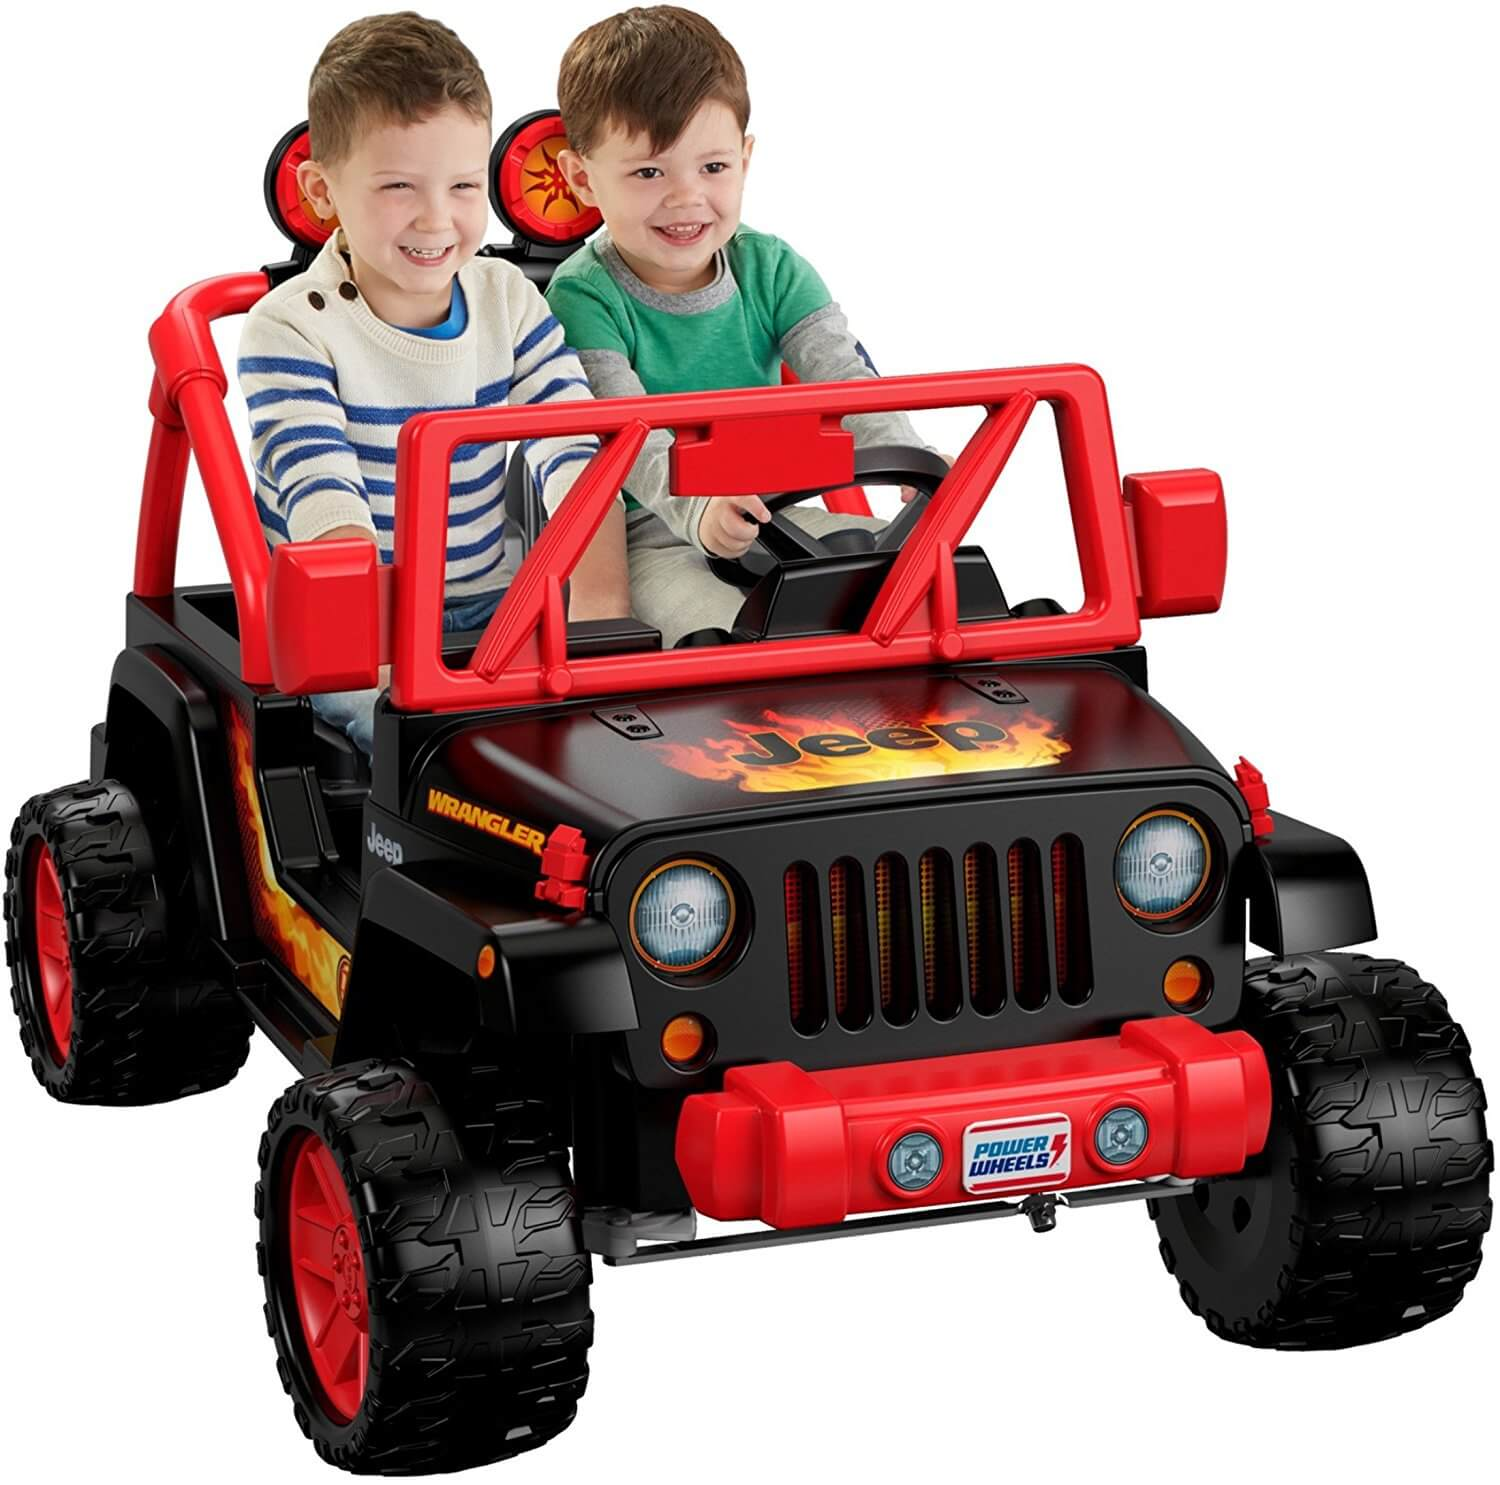 Fisher-Price Power Wheels Tough: lire les avis